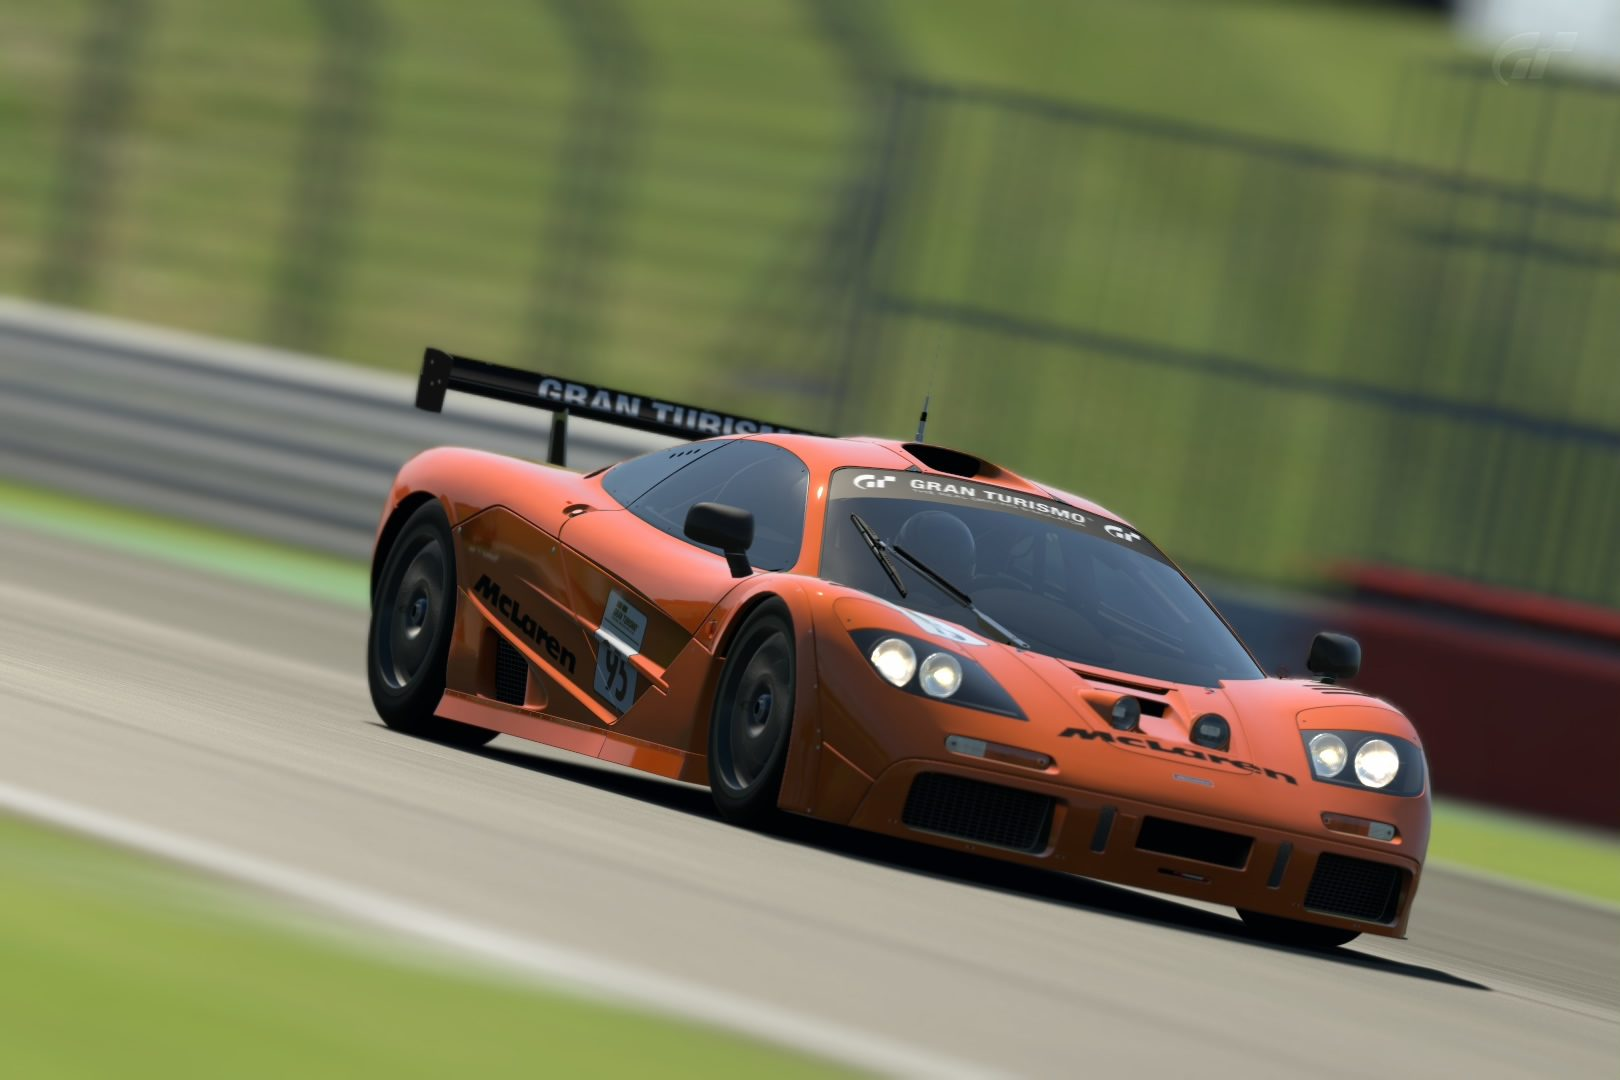 McLaren F1 GTR Race Car Base Model '95 (Car).jpg